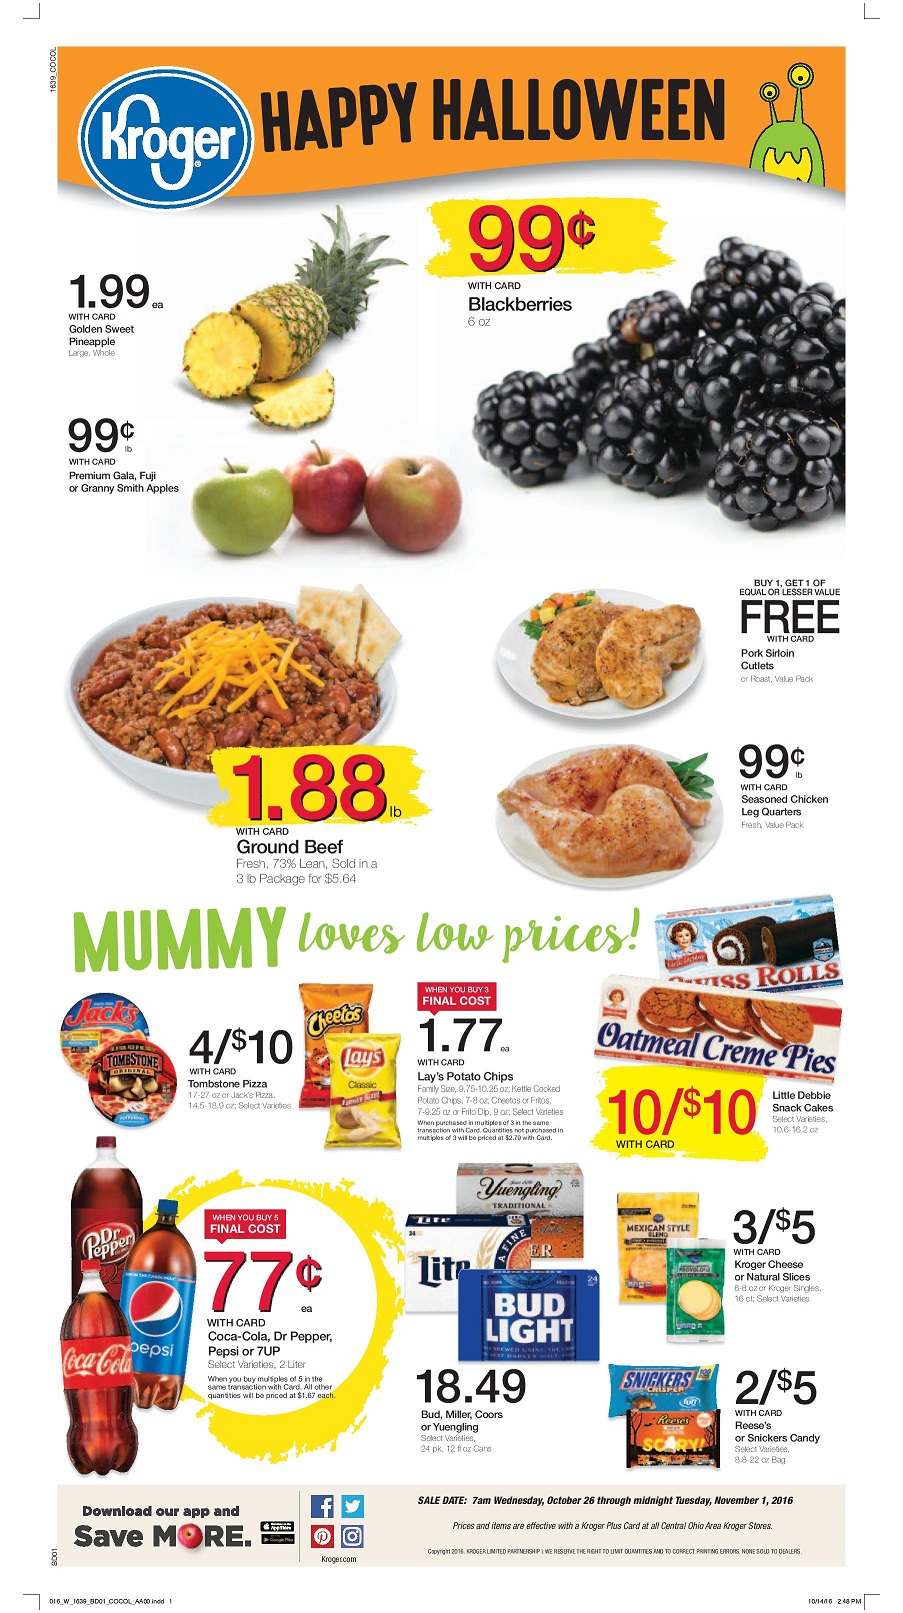 kroger-oct-26-nov-1-2016-page-001